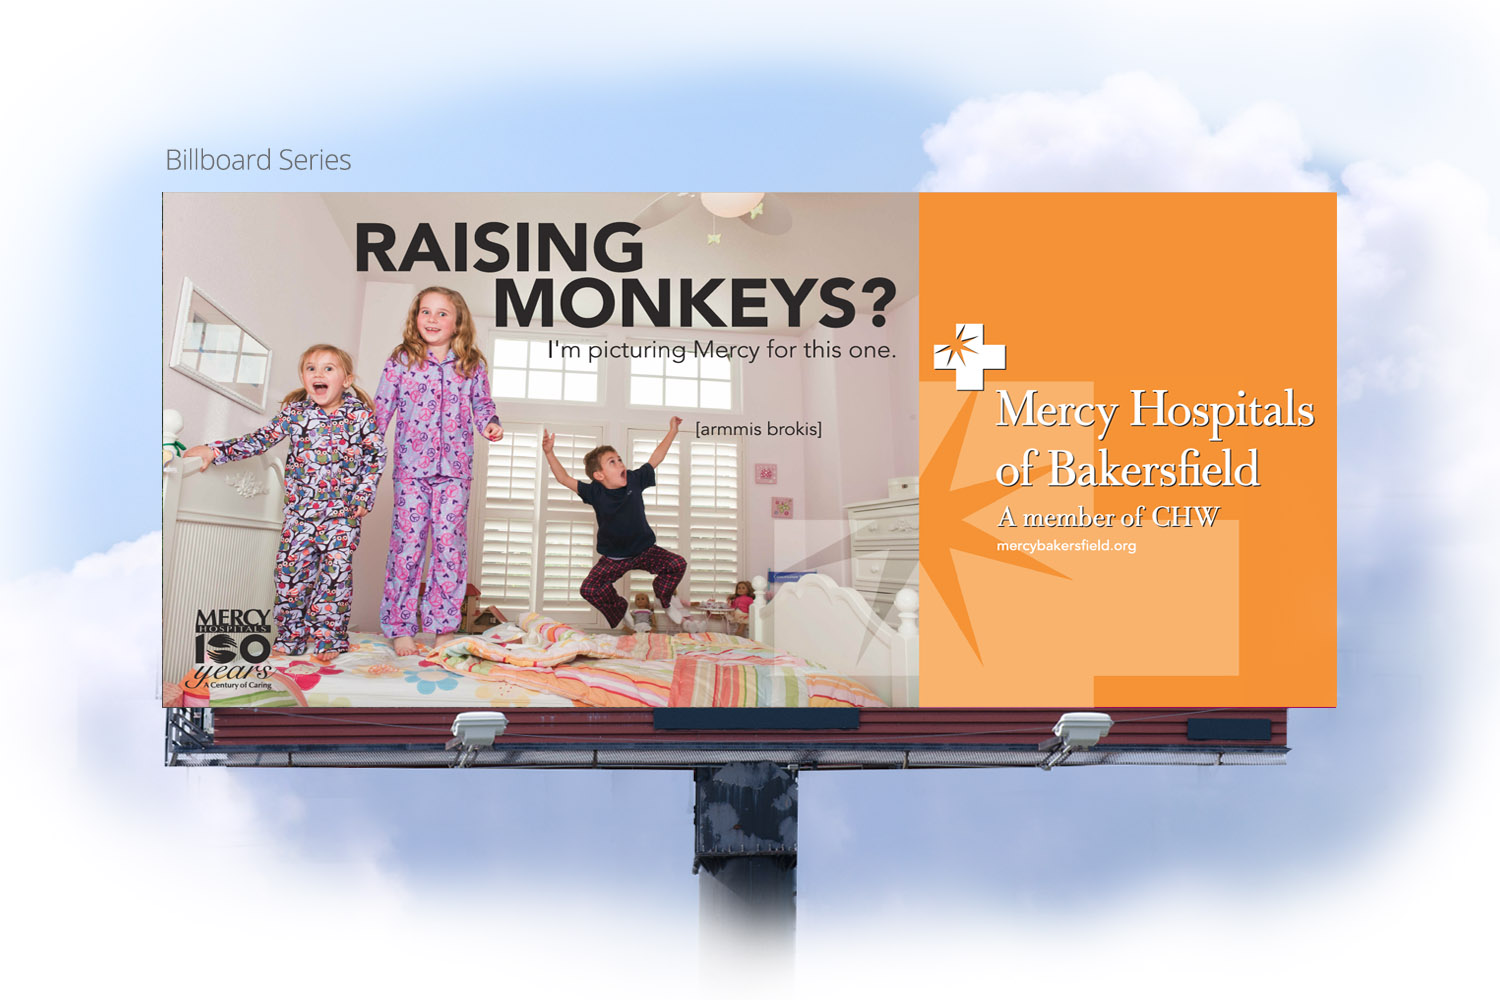 Mercy ER billboard campaign by DMI Agency, Visalia, CA - Monkeys